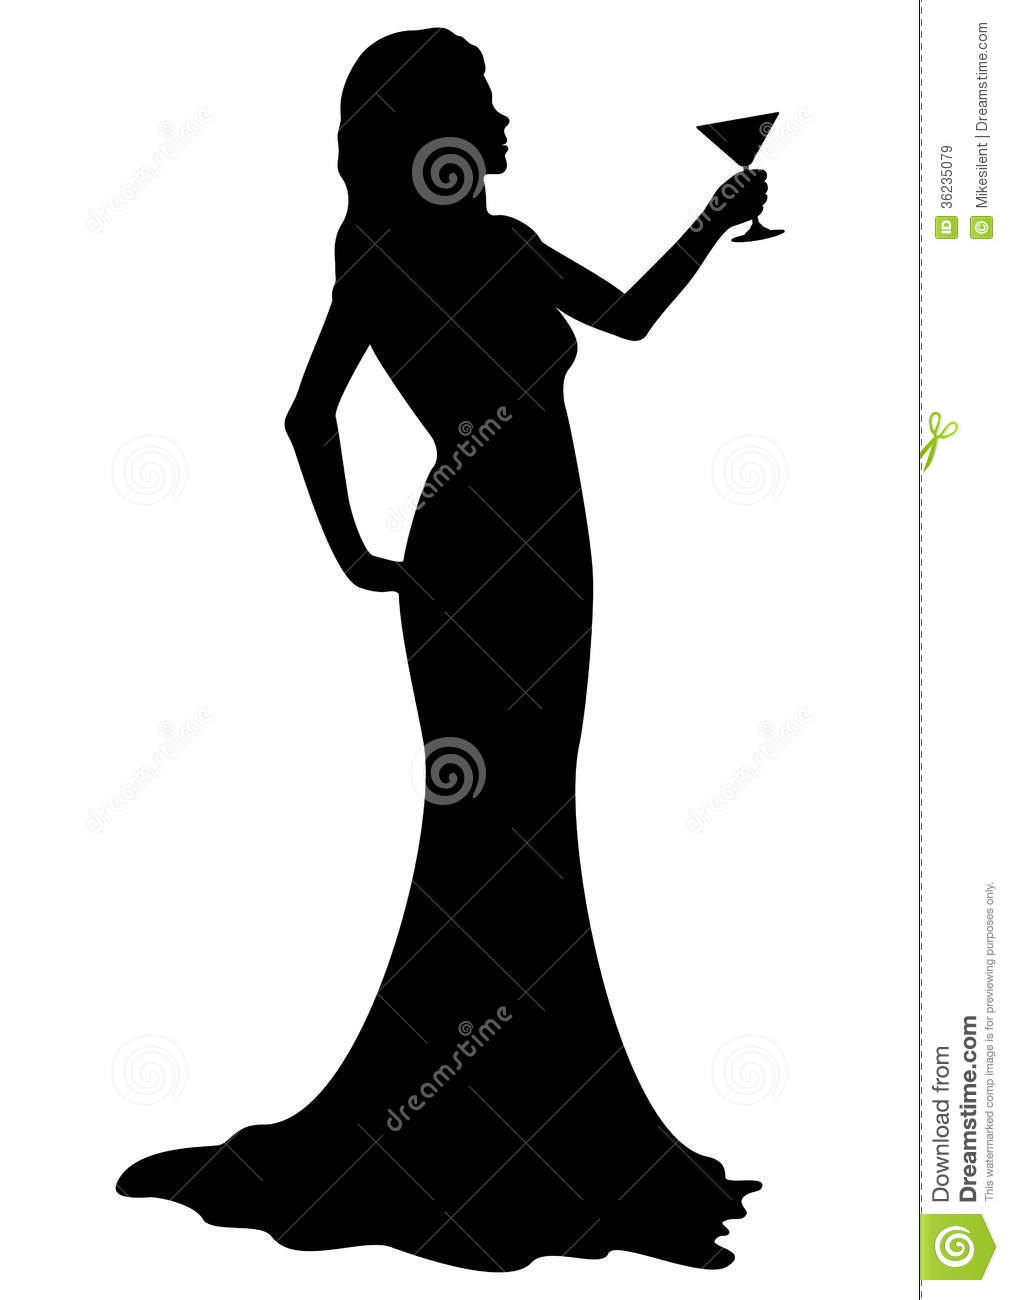 Dress Silhouette At Getdrawings Com Free For Personal Use Dress